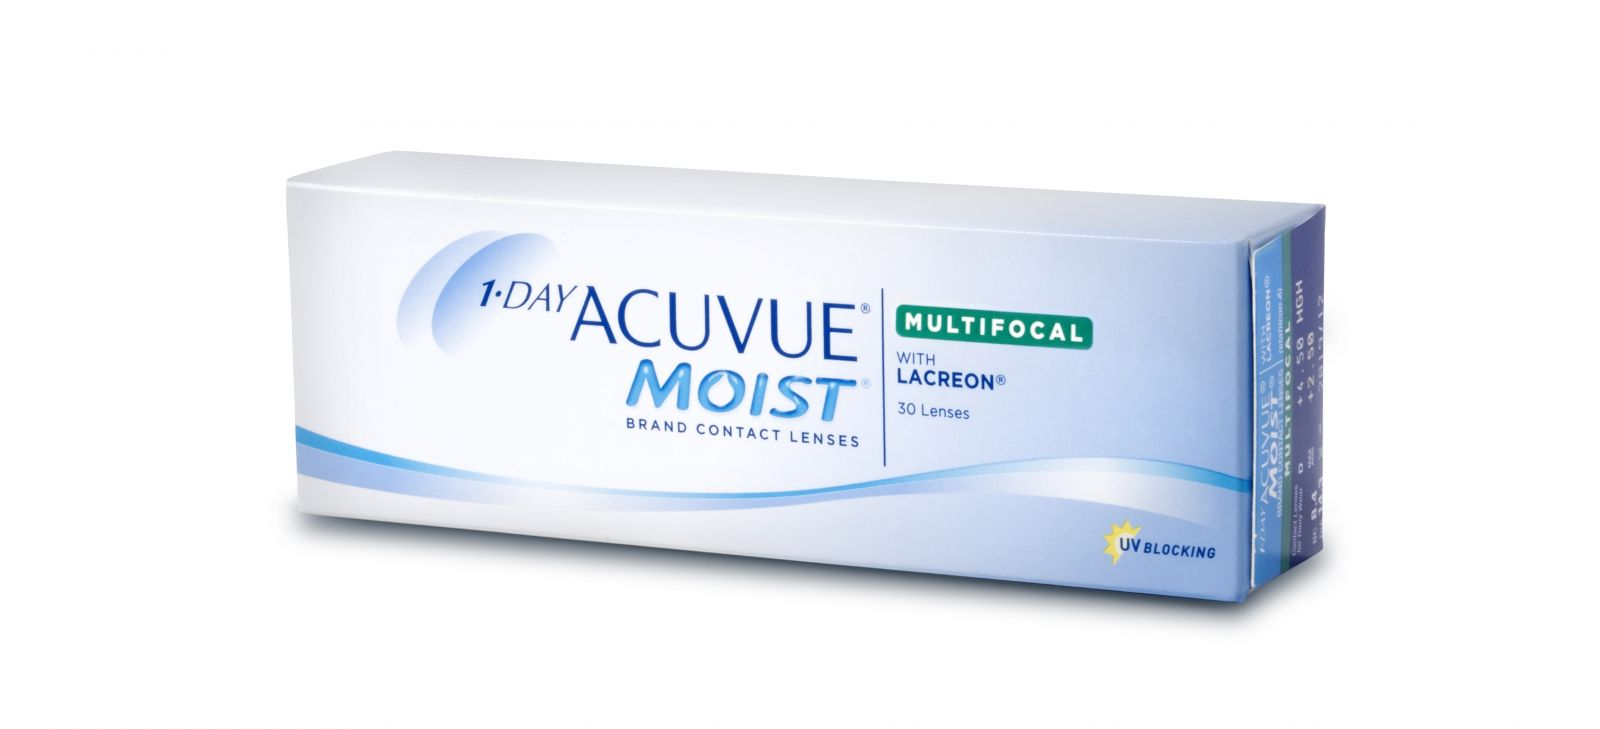 one day acuvue Discover 1-day acuvue® moist contact lenses for near and far sightedness join myacuvue™ to enjoy s$30 off (t&cs apply)  one of the highest levels of uv .